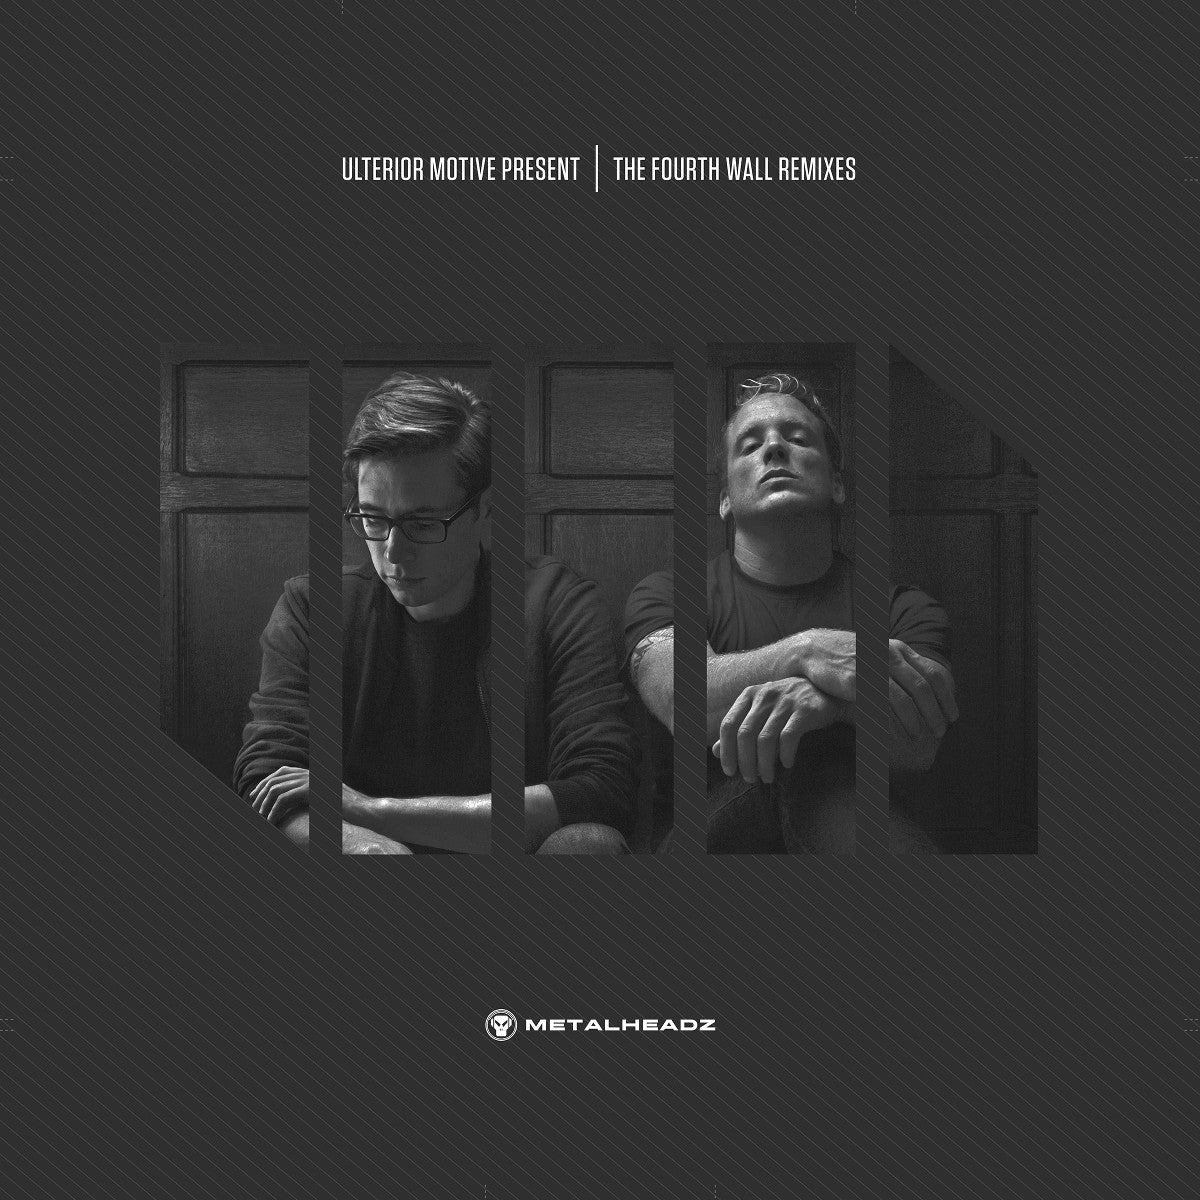 Ulterior Motive - The Fourth Wall Remixes , Vinyl - Metalheadz, Unearthed Sounds